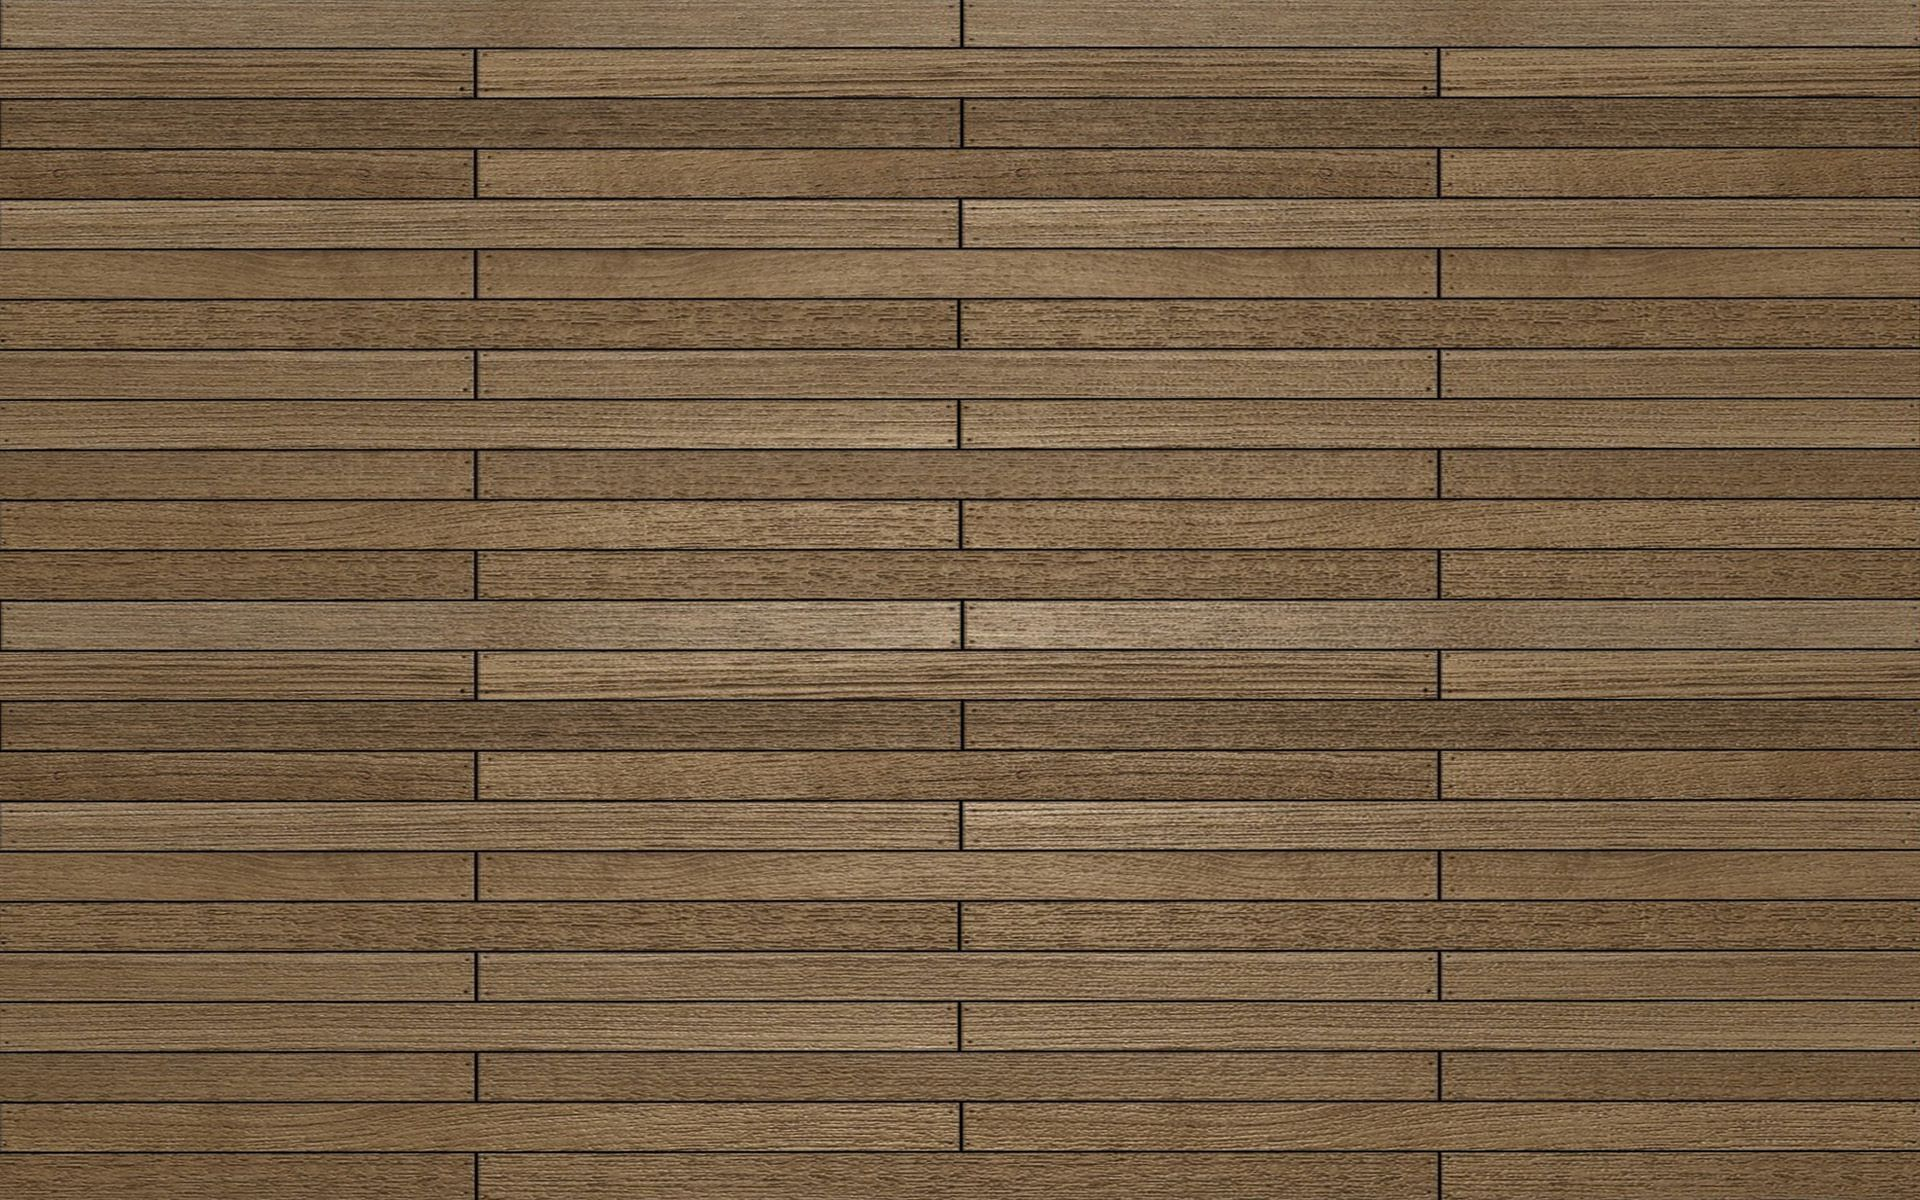 Wood flooring background awesome 31006 material texture for Hardwood timber decking